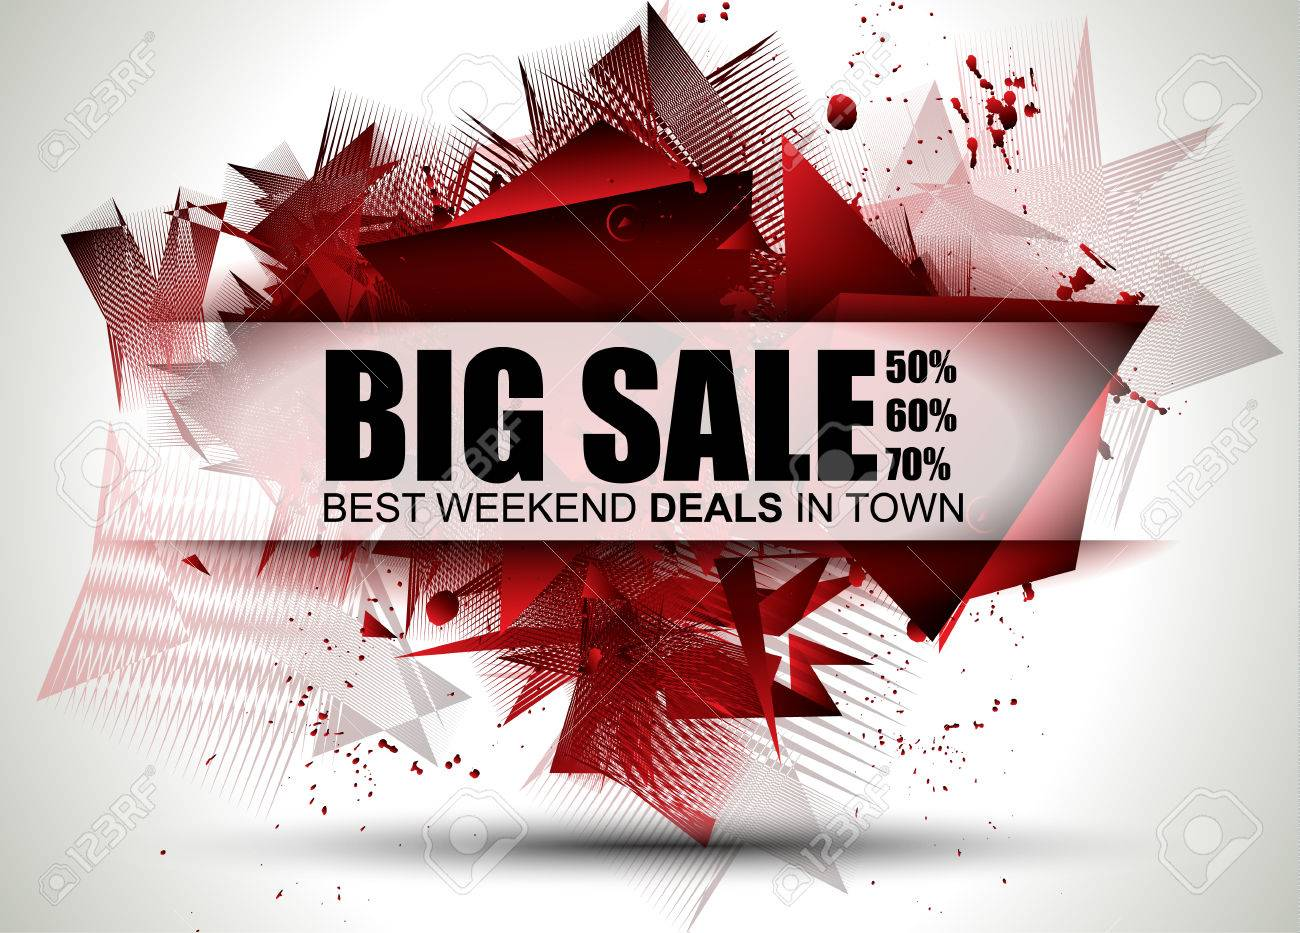 Big Sale Best Discoount in time web banner for shop sales tag, poster for advertisement, sales flyer, black friday and web promotion materials. - 52205254